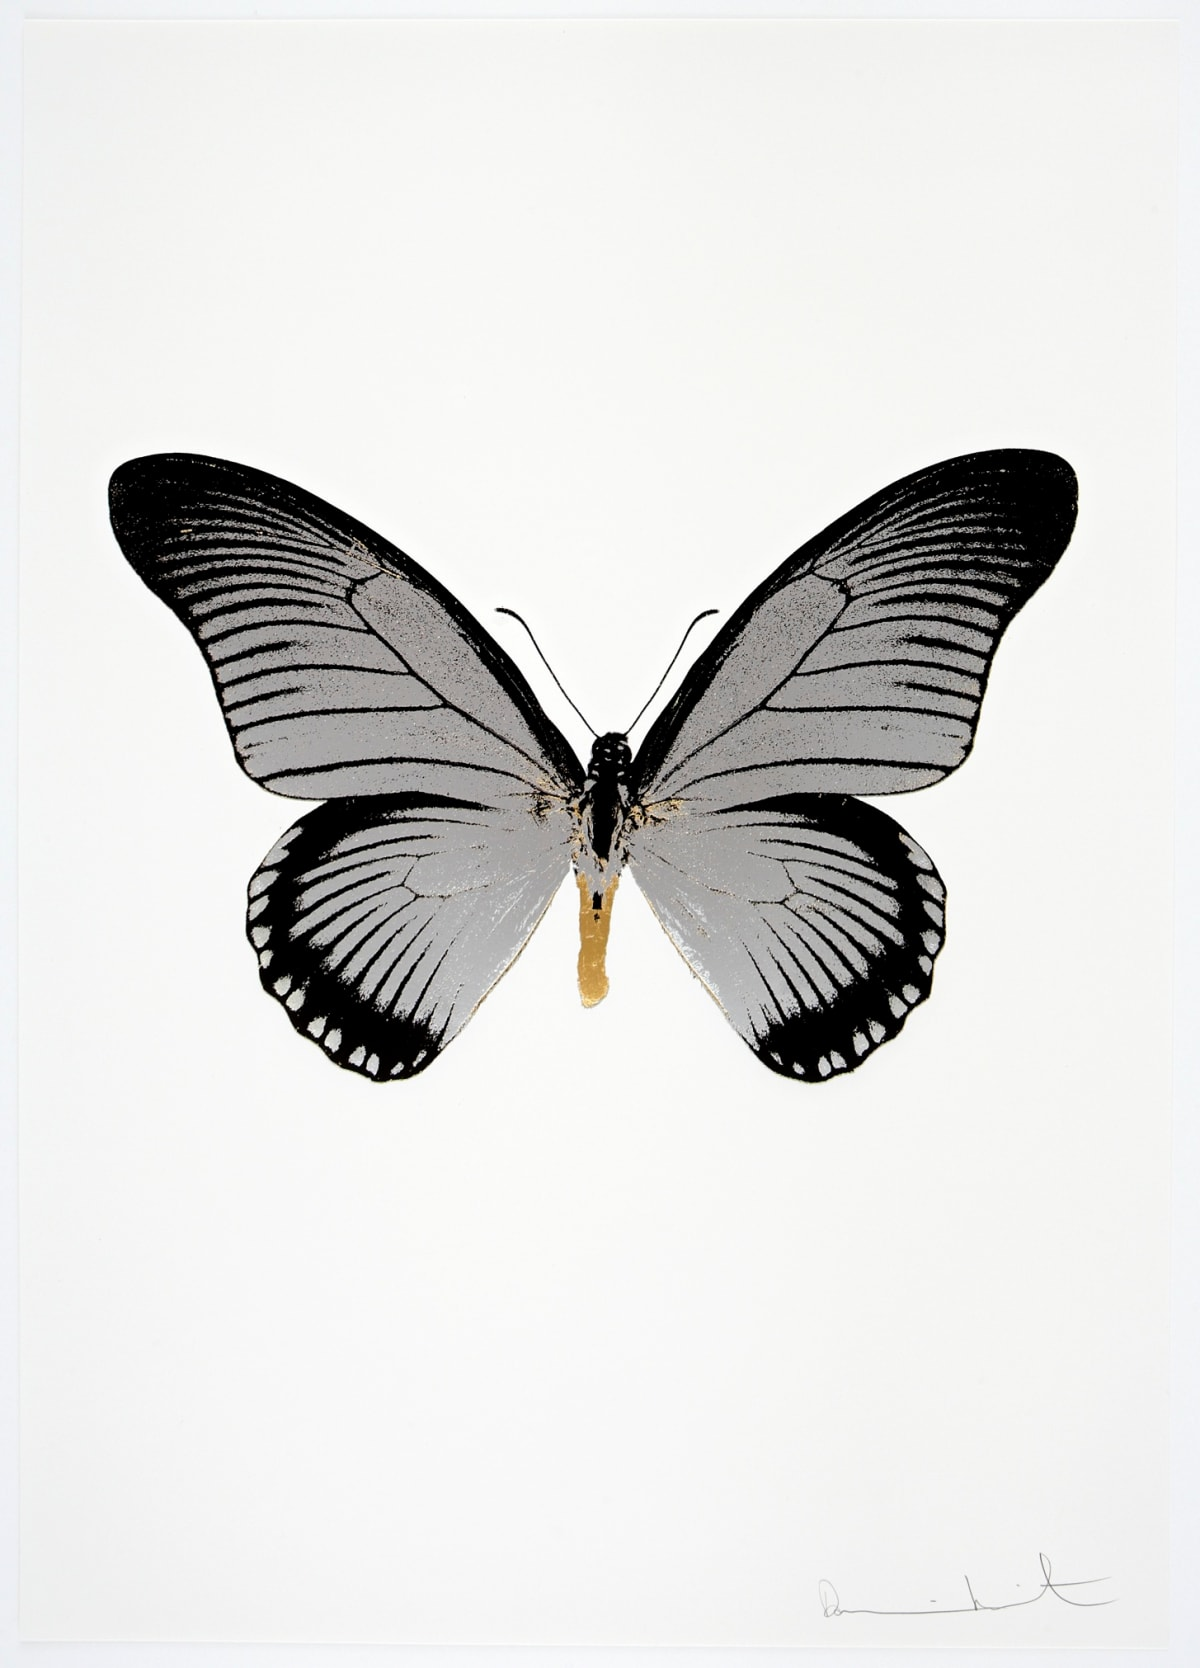 Damien Hirst The Souls IV - Silver Gloss/Raven Black/African Gold Damien Hirst butterfly foil print for sale Damien Hirst print for sale , 2010 3 colour foil block on 300gsm Arches 88 archival paper. Signed and numbered. Published by Paul Stolper and Other Criteria 72 x 51cm OC8033 / 1418-56 Edition of 15